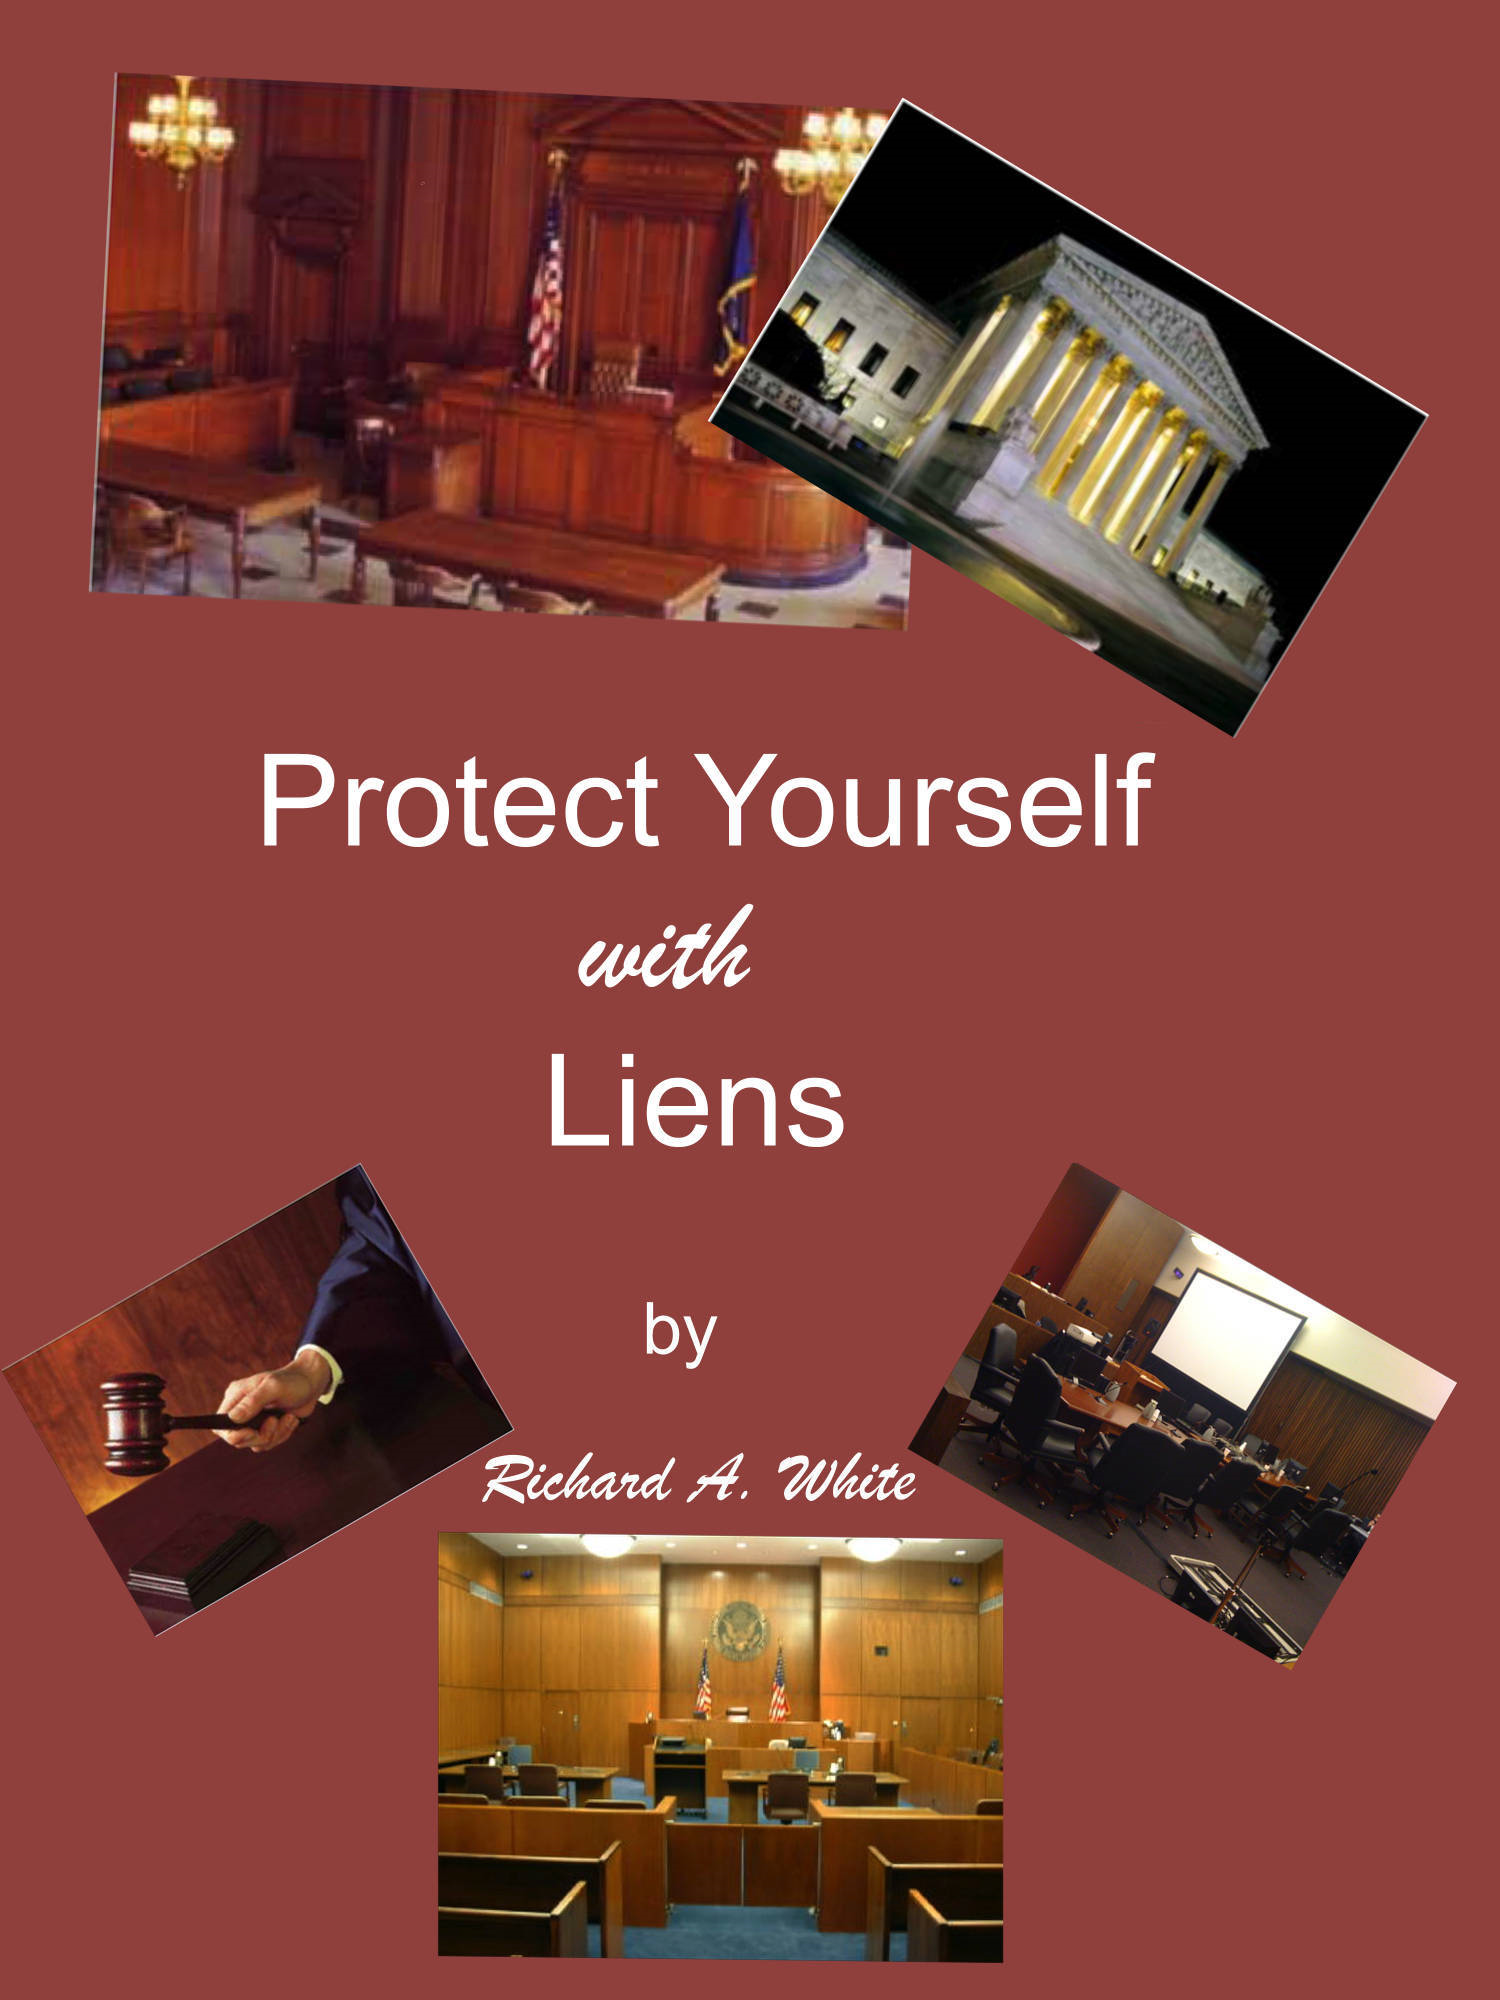 Protect Yourself with Liens